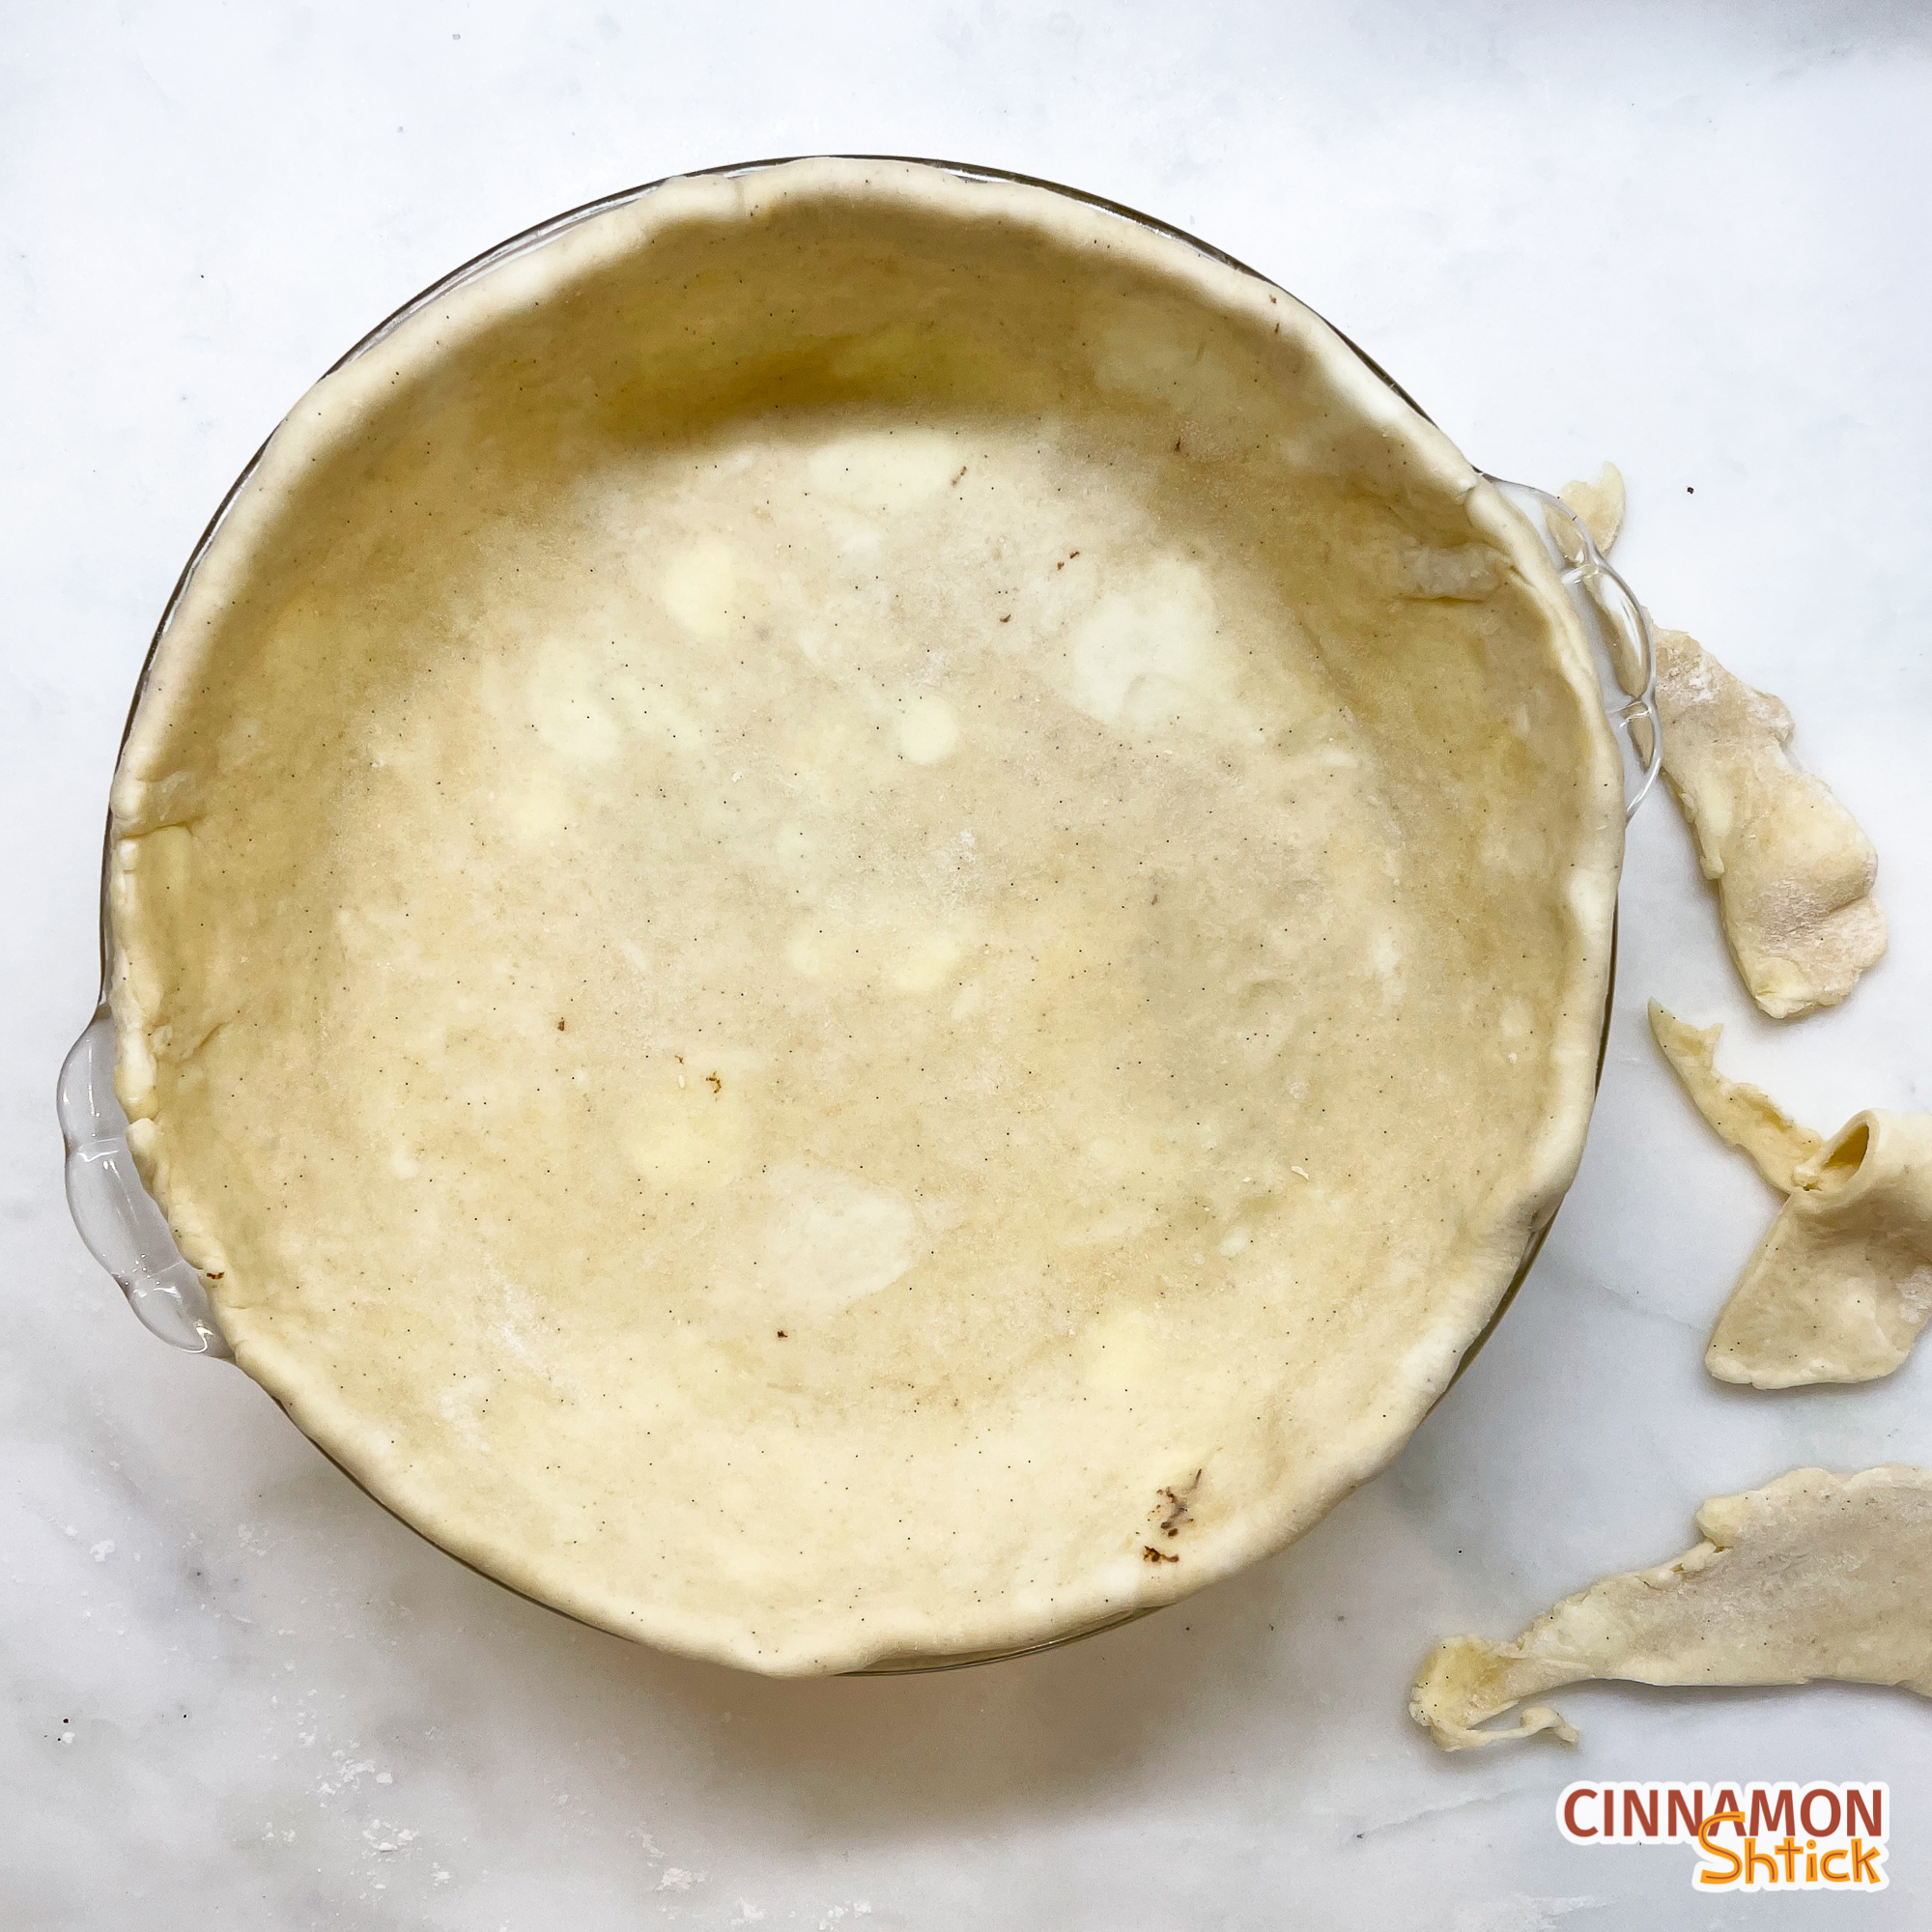 side view of pie dough in pie plate showing that the overhand was tucked into the pie dish with some scraps on the side